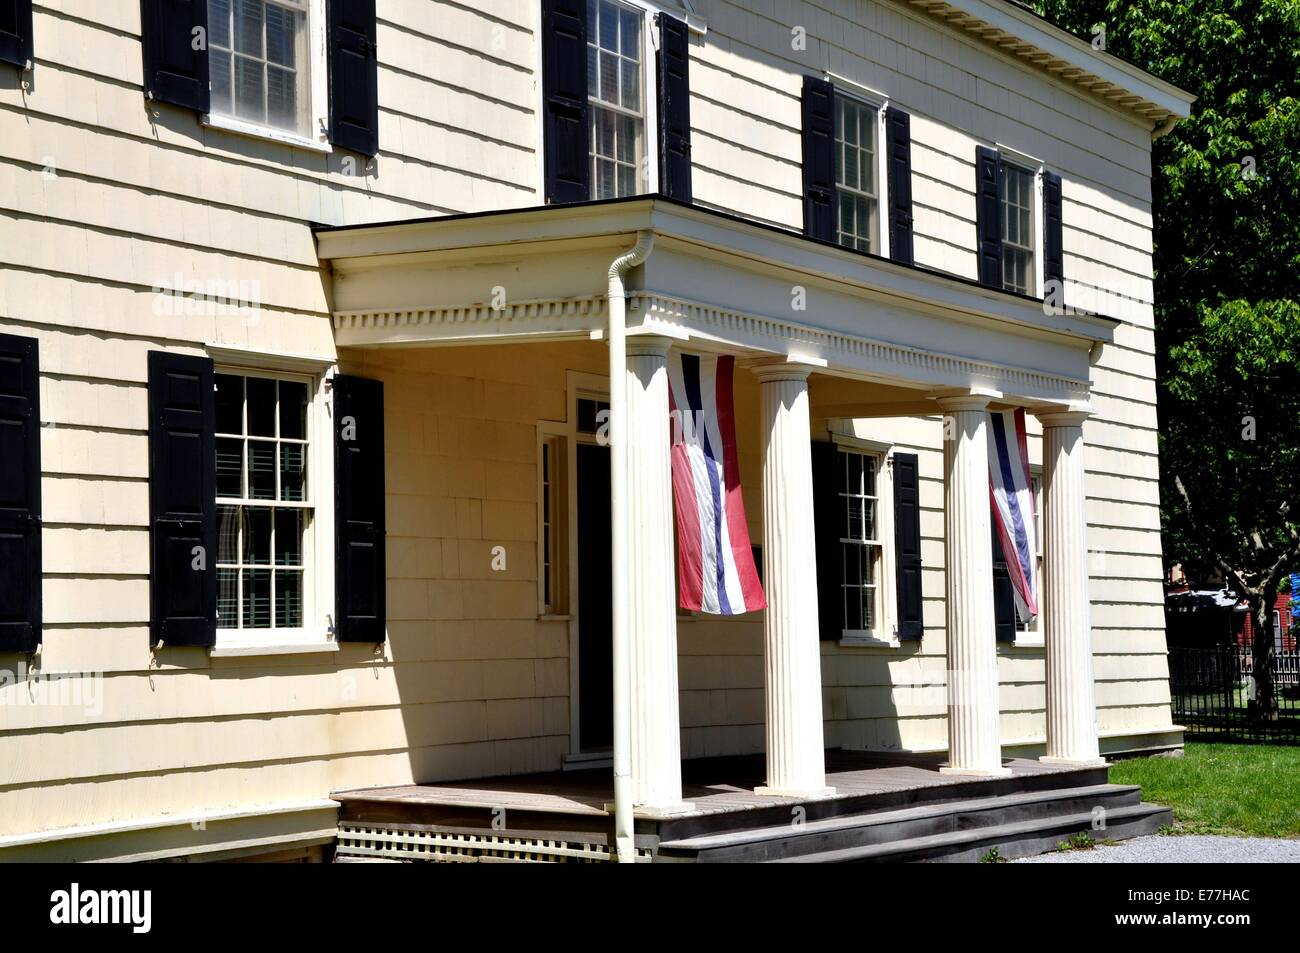 Entrance With Portico Columns : New york city entrance portico with four columns at the